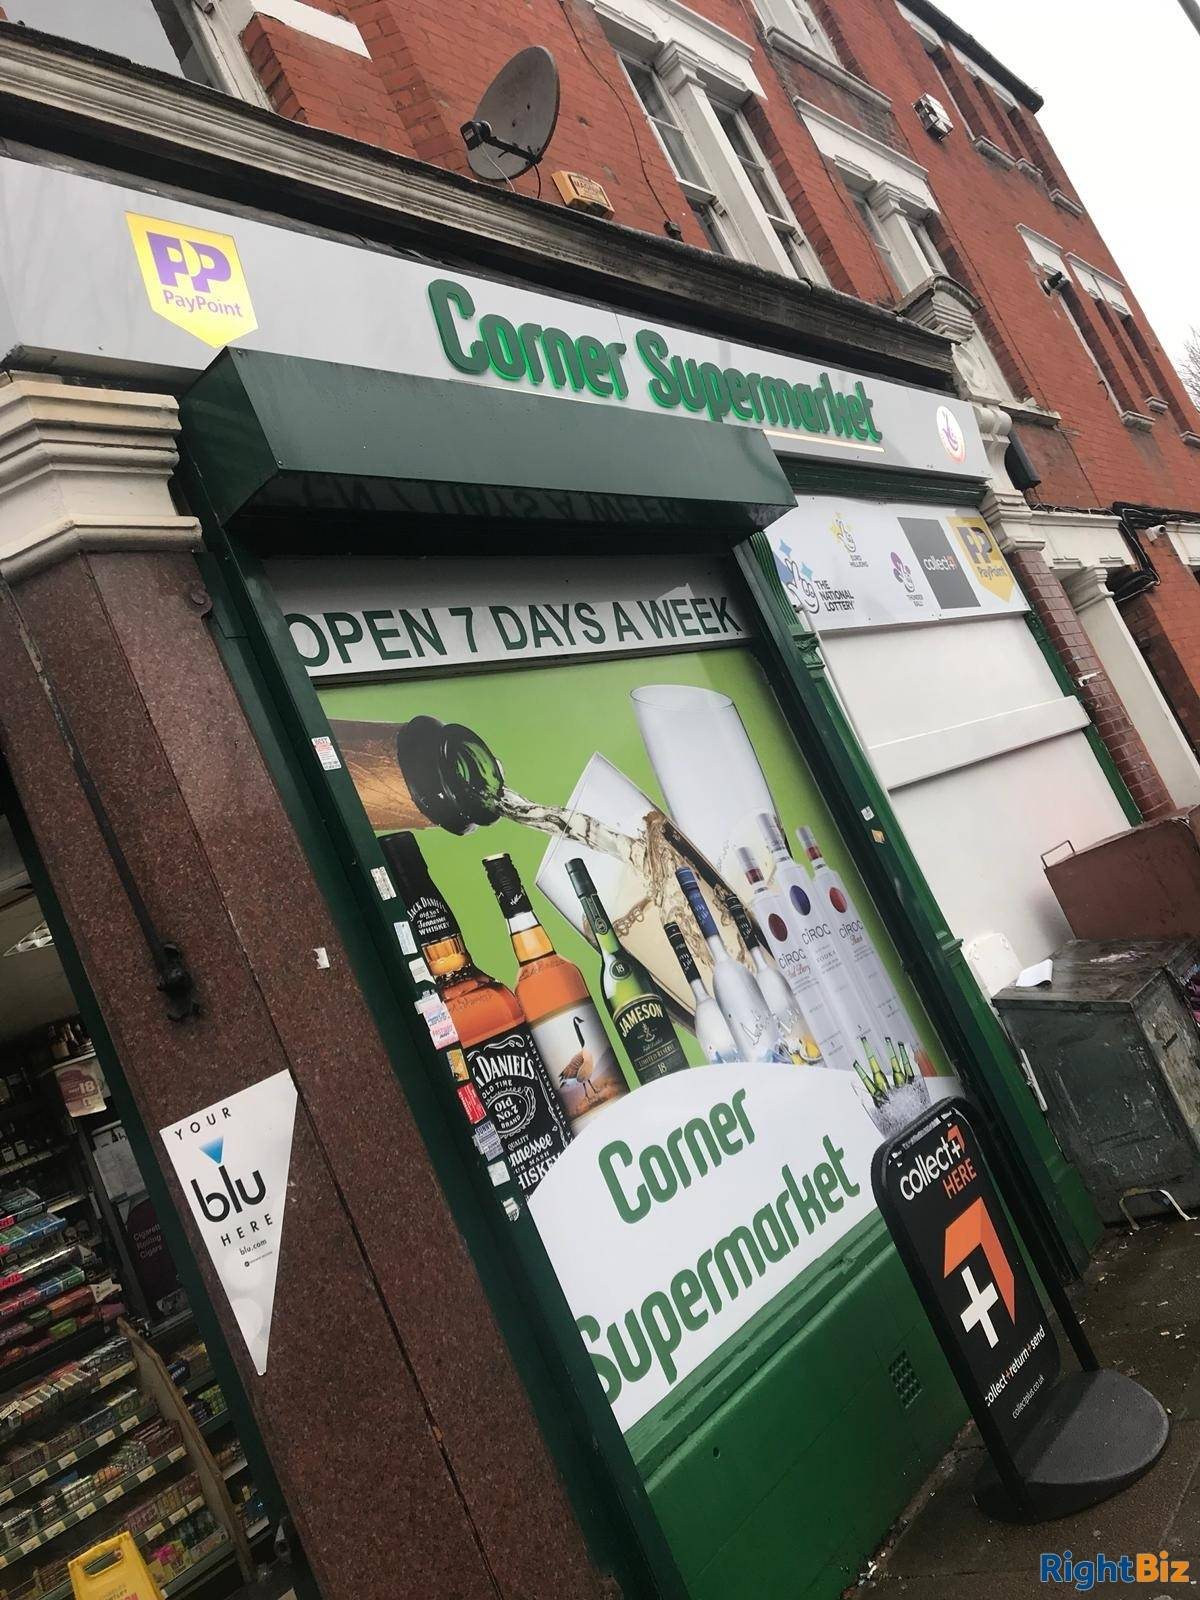 Convenient Store For sale in London Leasehold  - Image 10